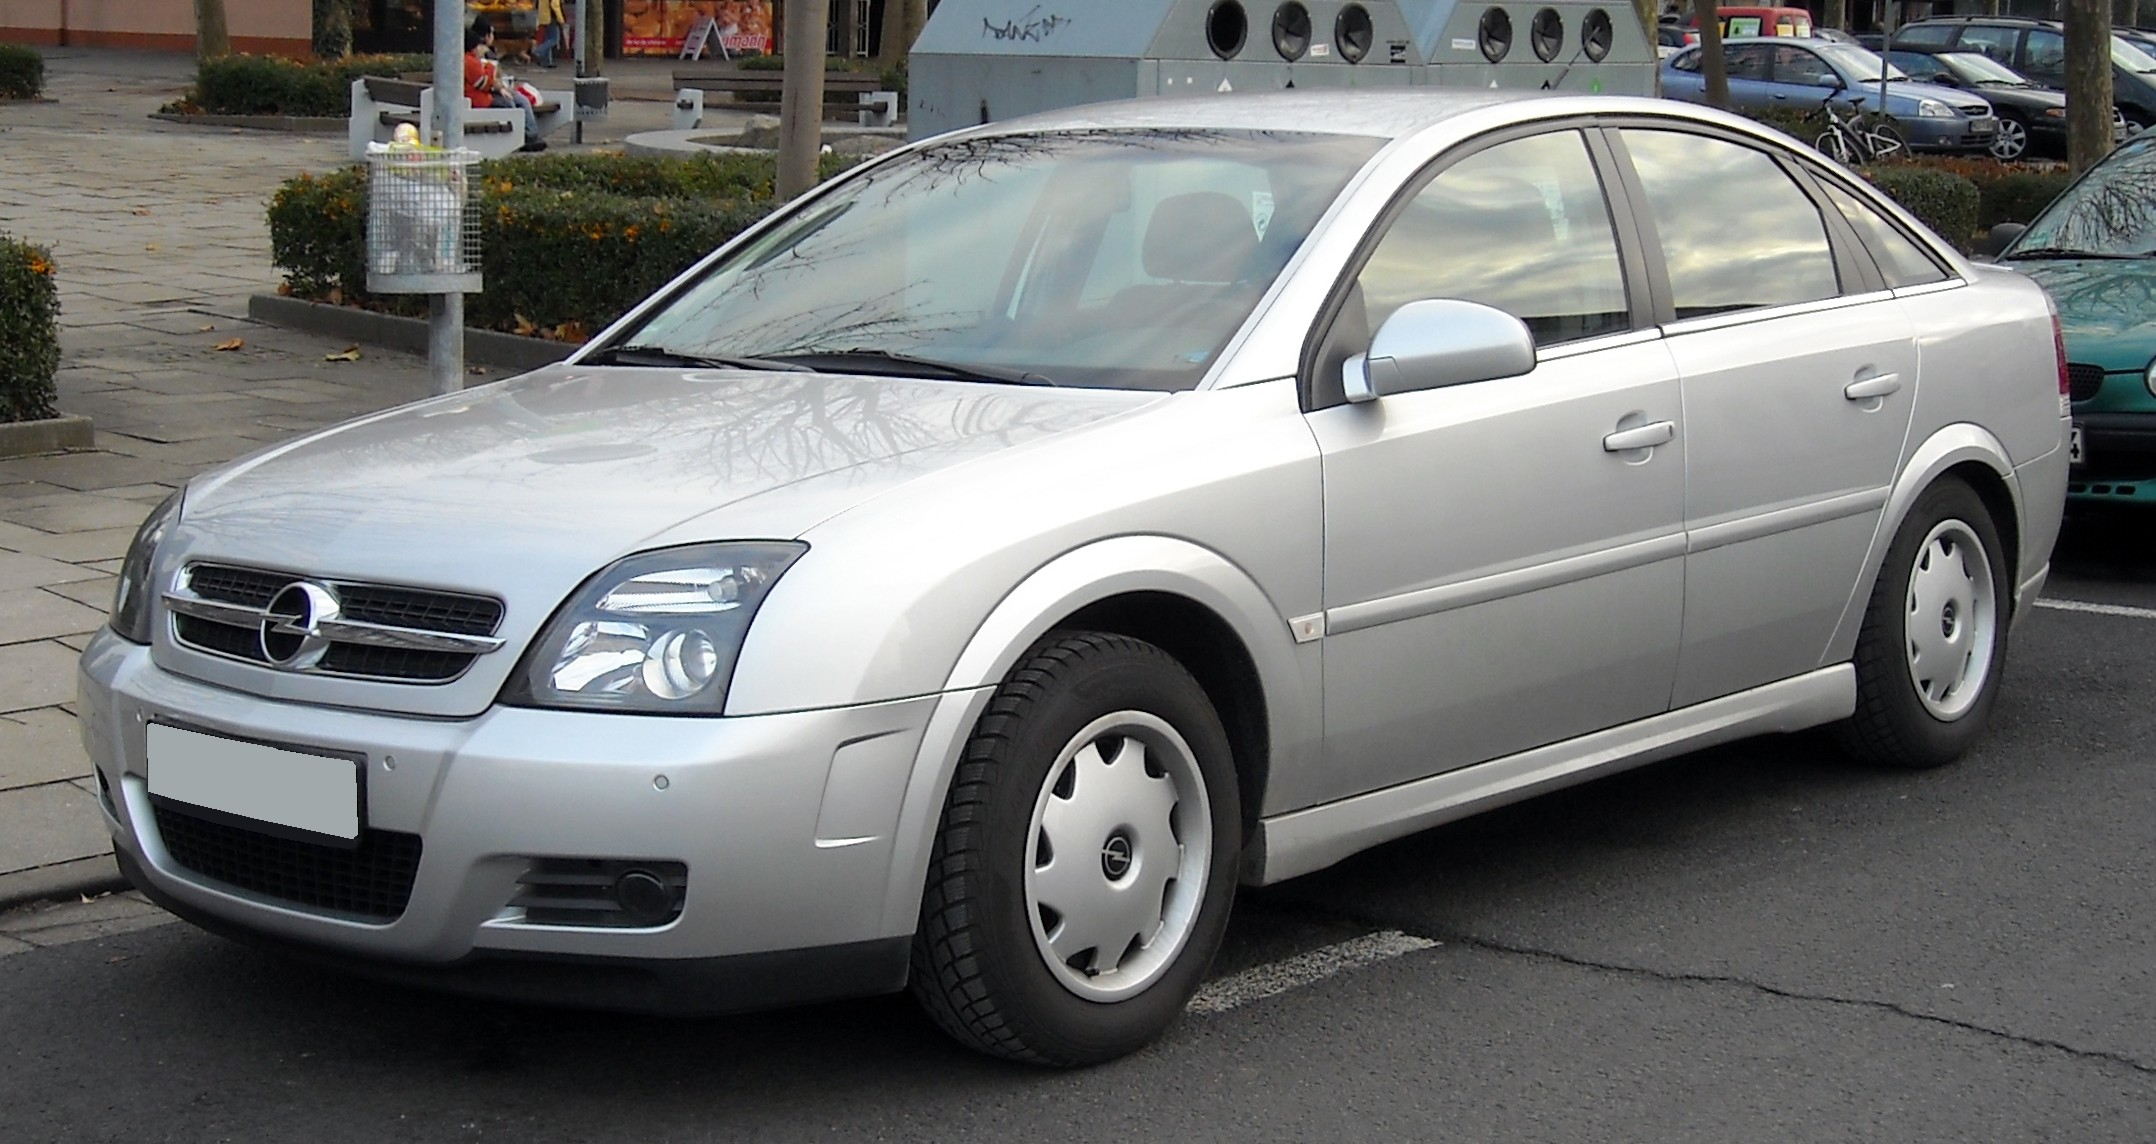 file opel vectra c gts front